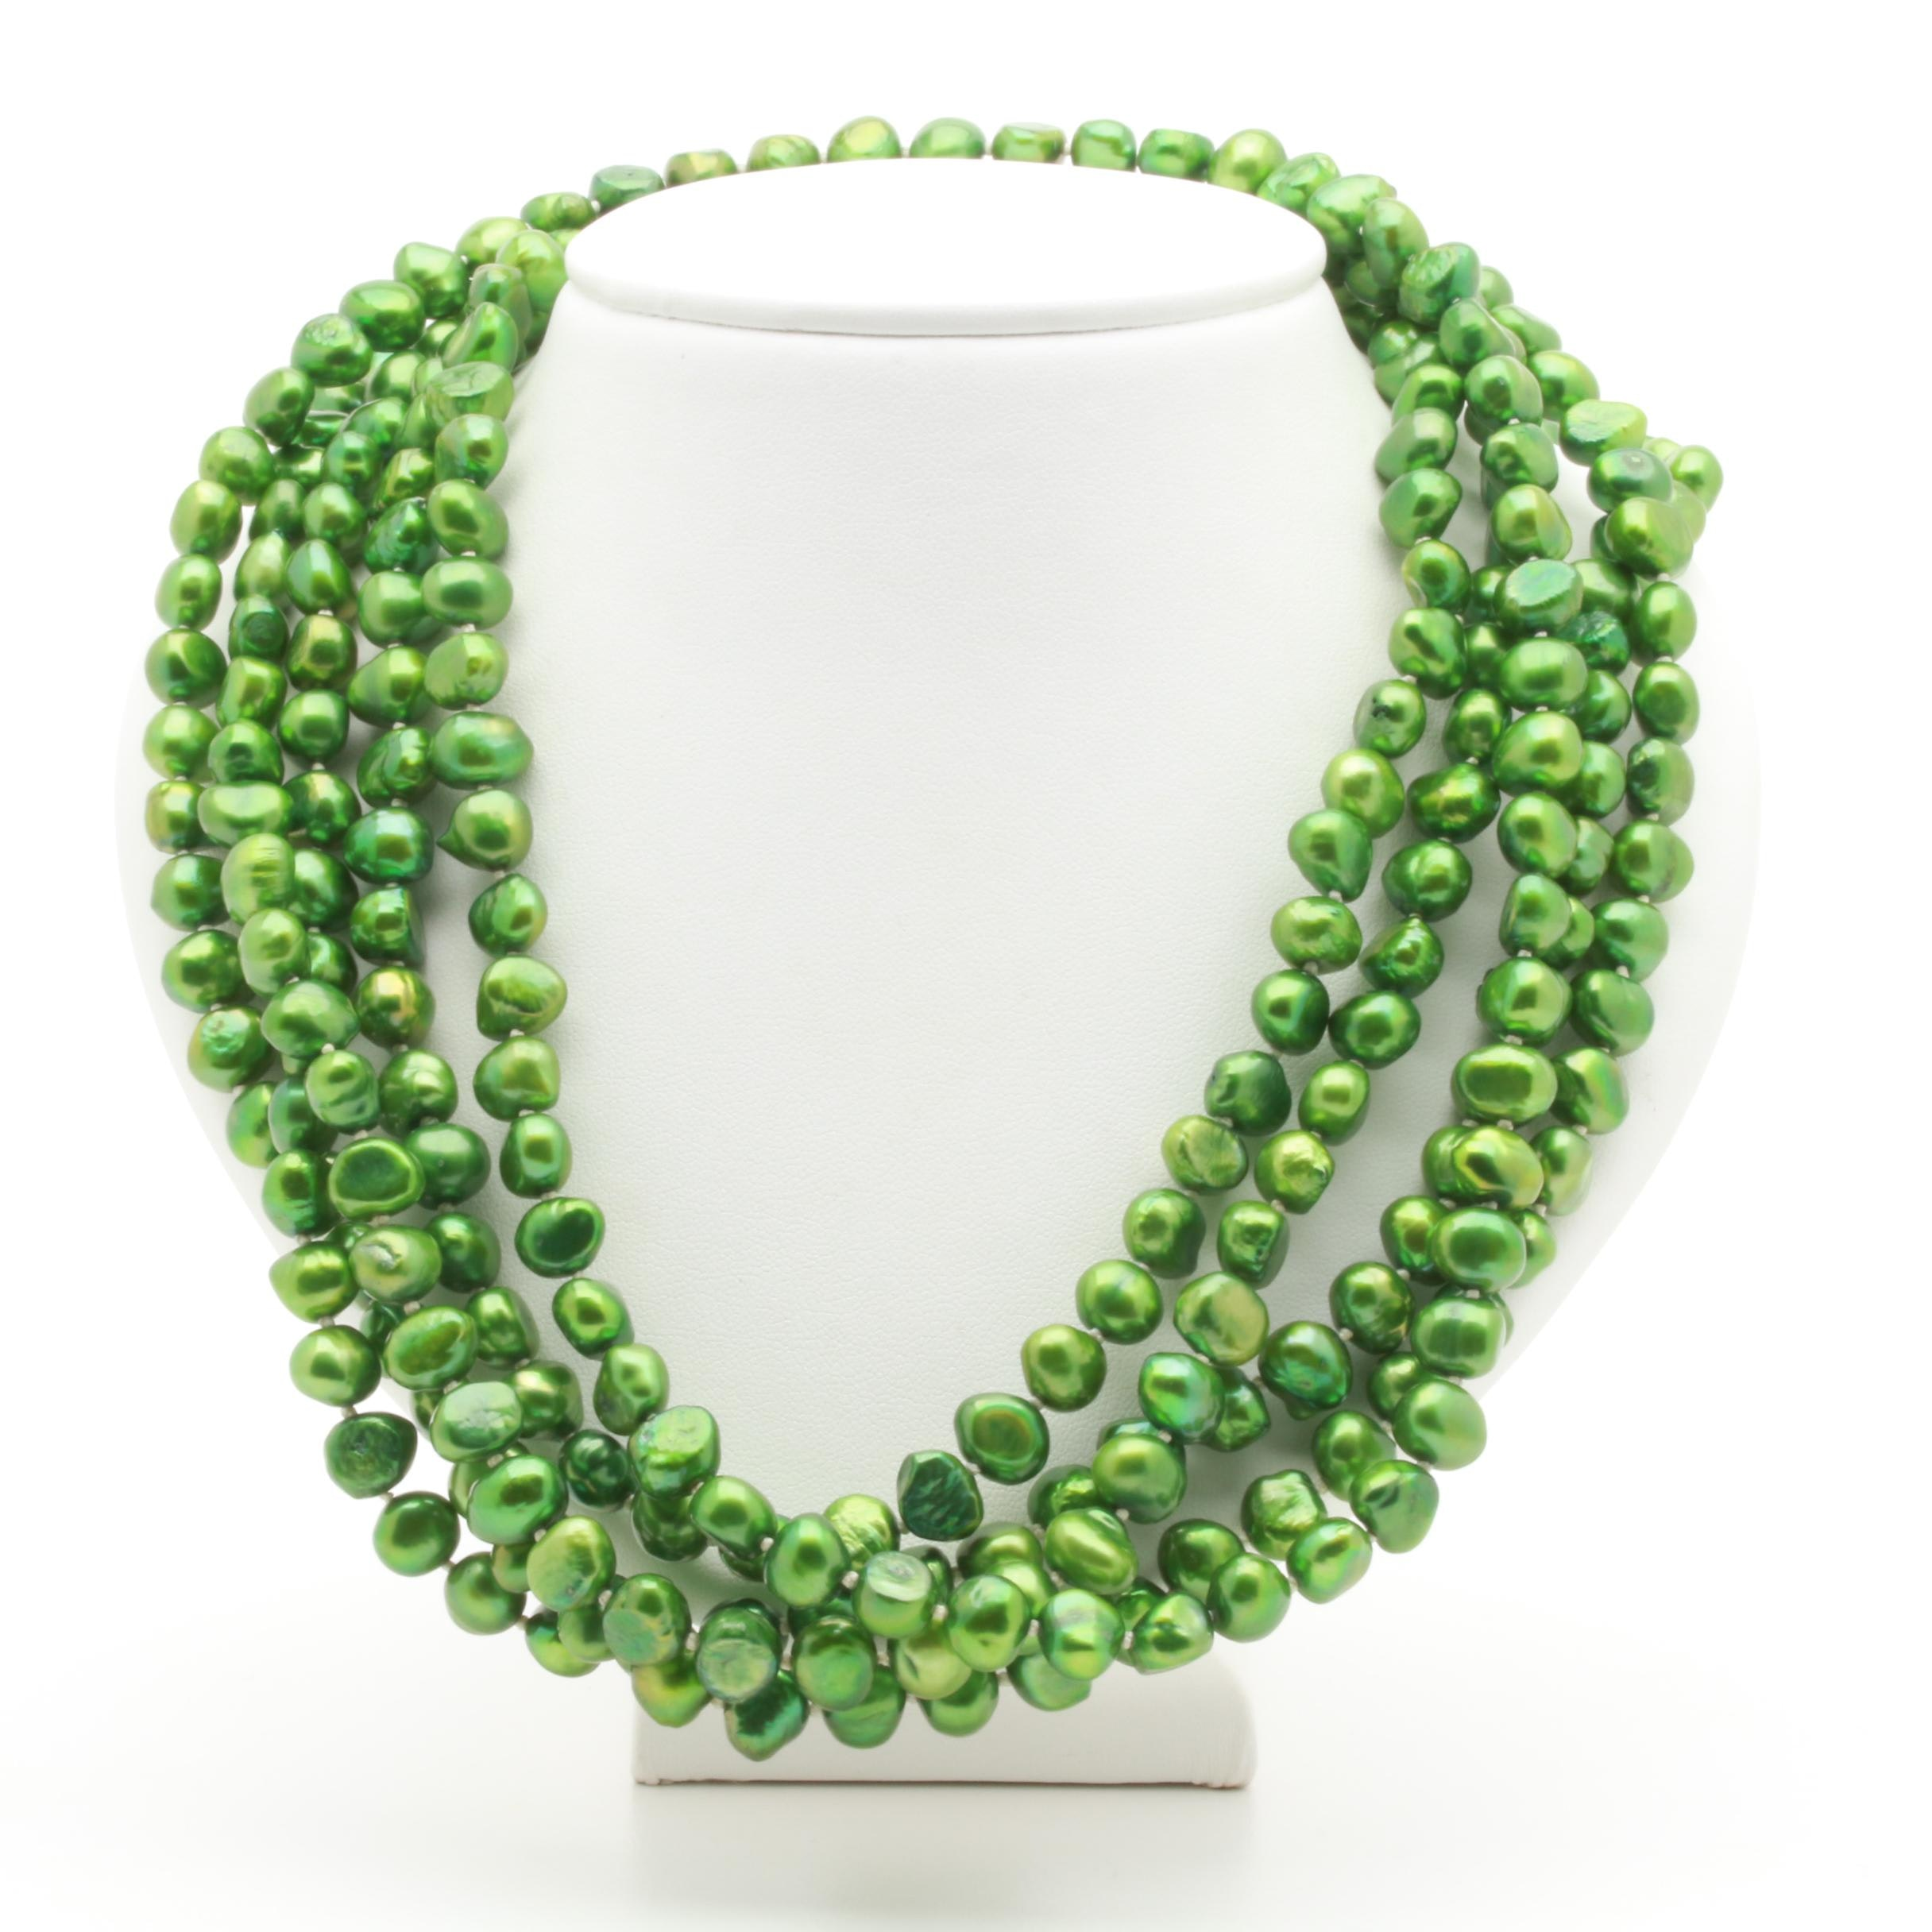 Dyed Cultured Freshwater Pearl Endless Necklace